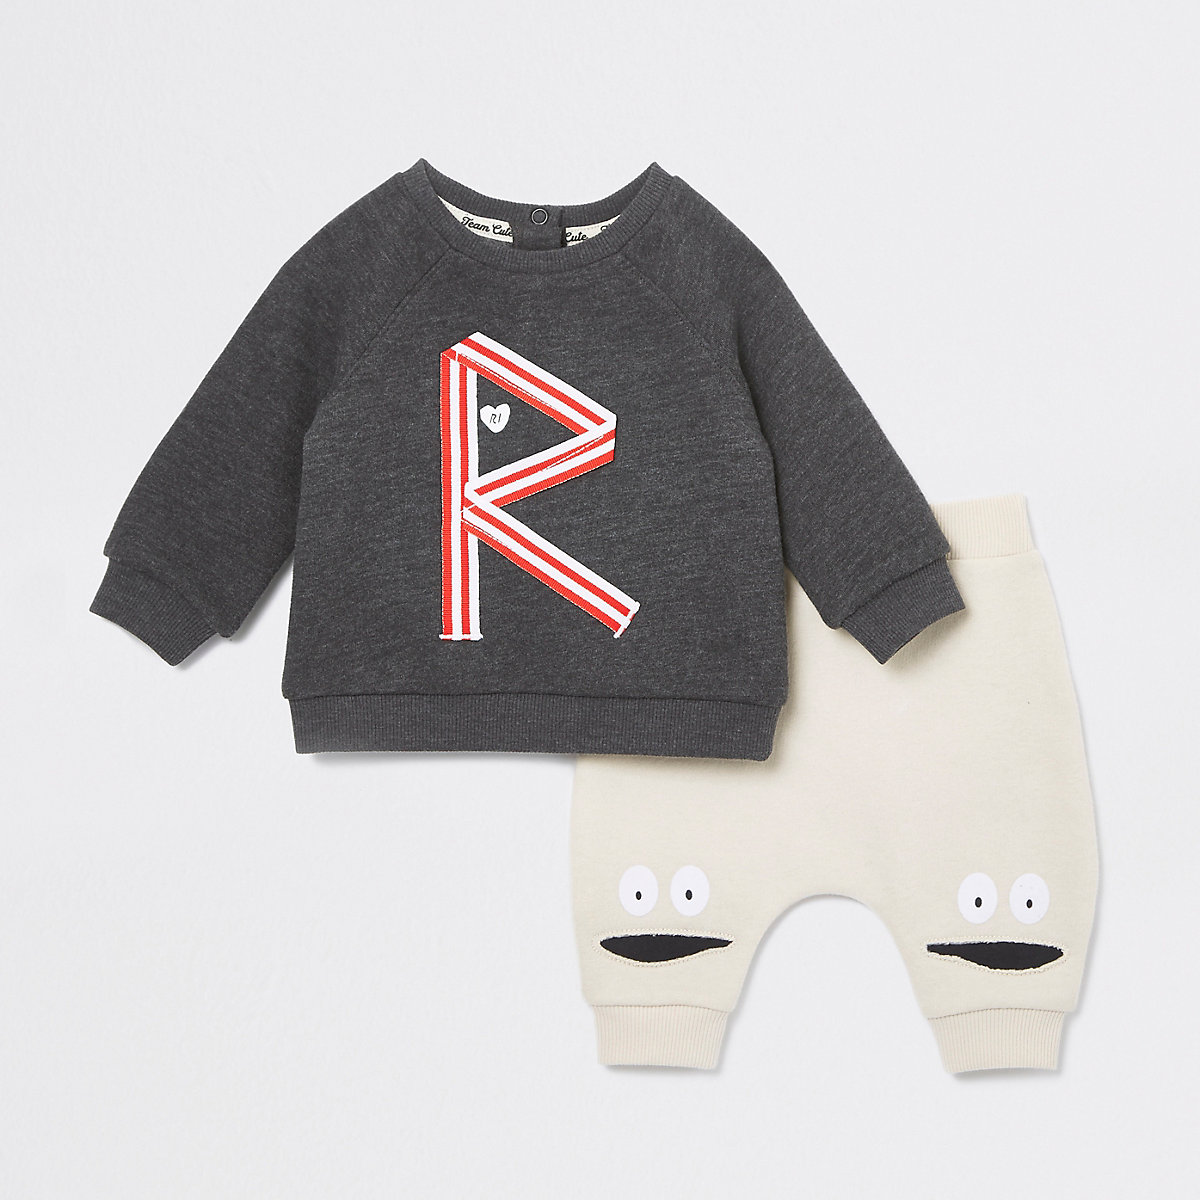 Baby beige 'R' print jogger outfit